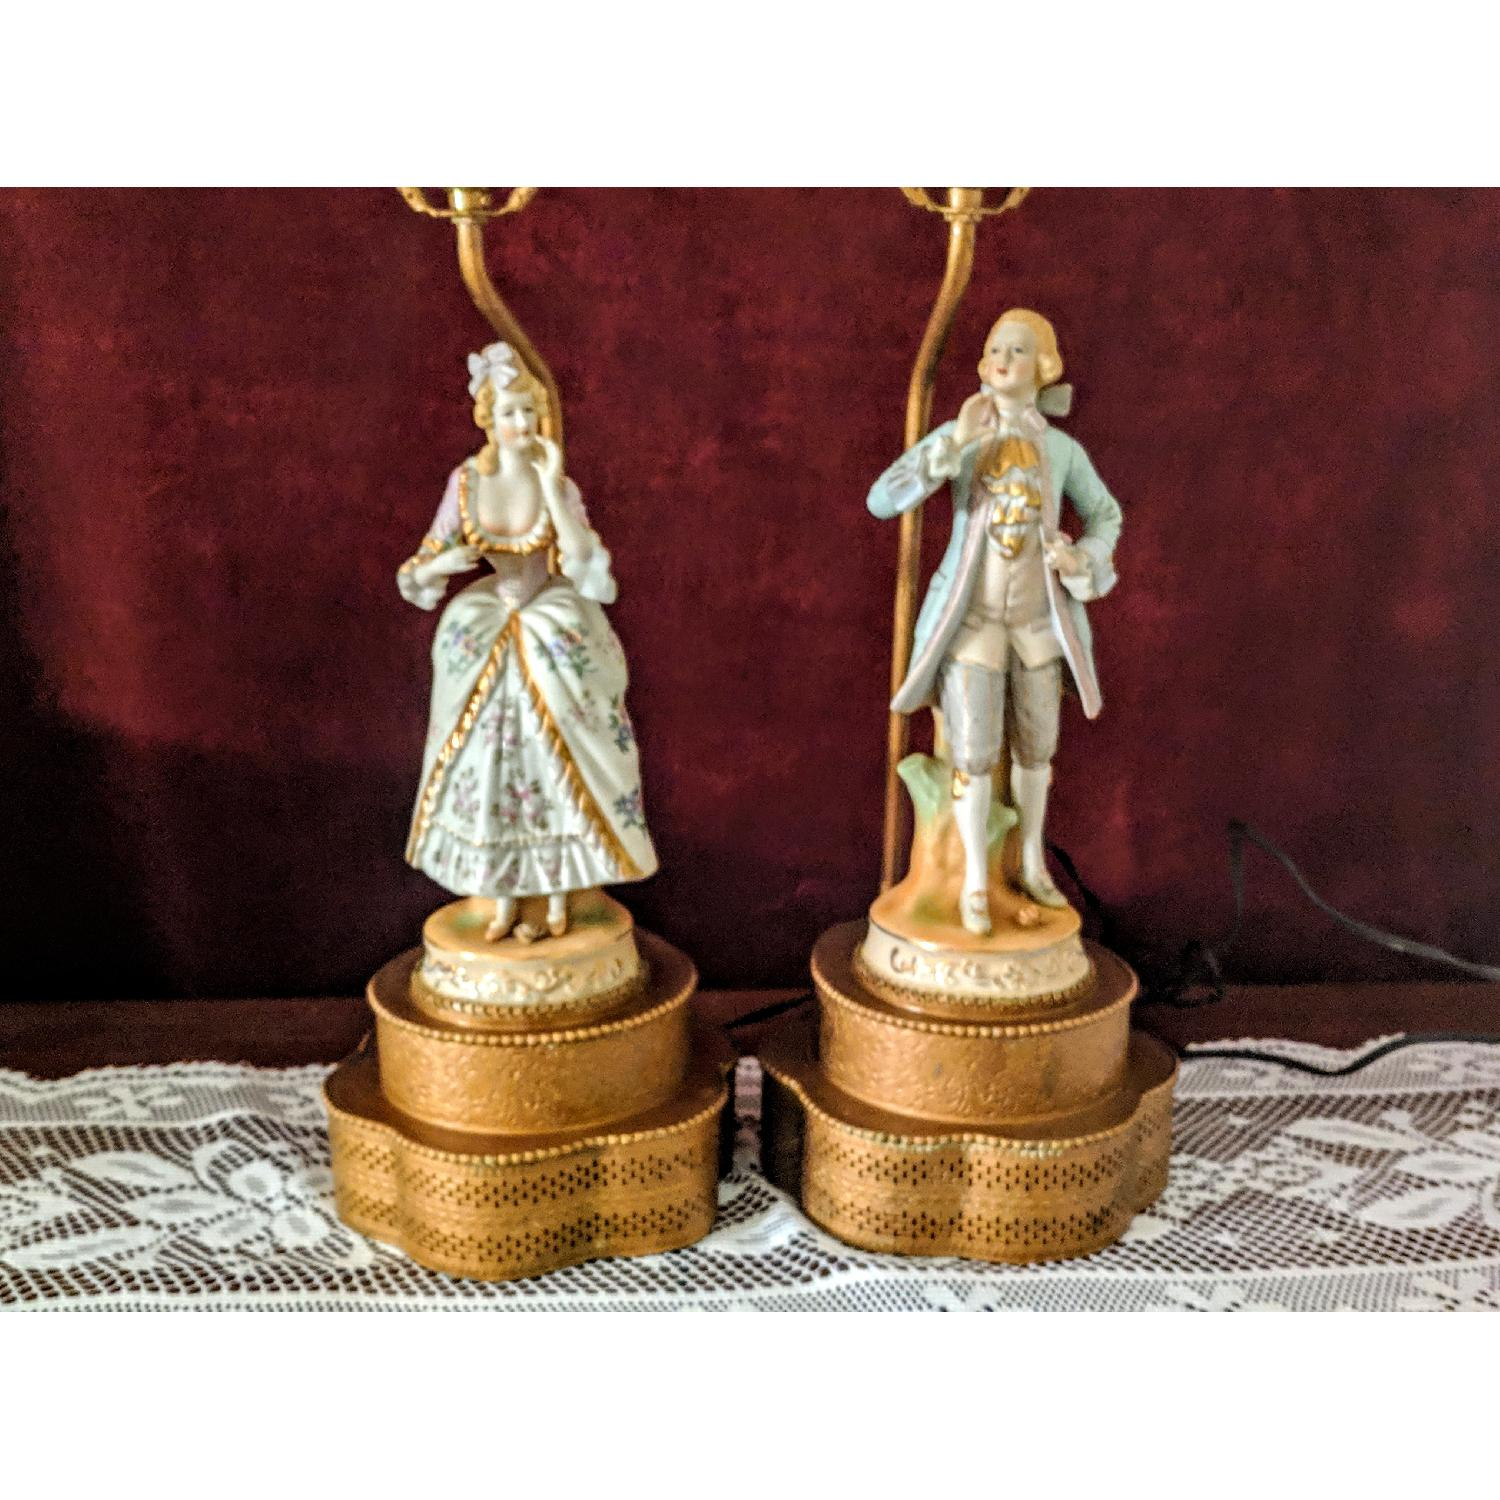 Antique Figurine Lamps w/ Metal Base-0